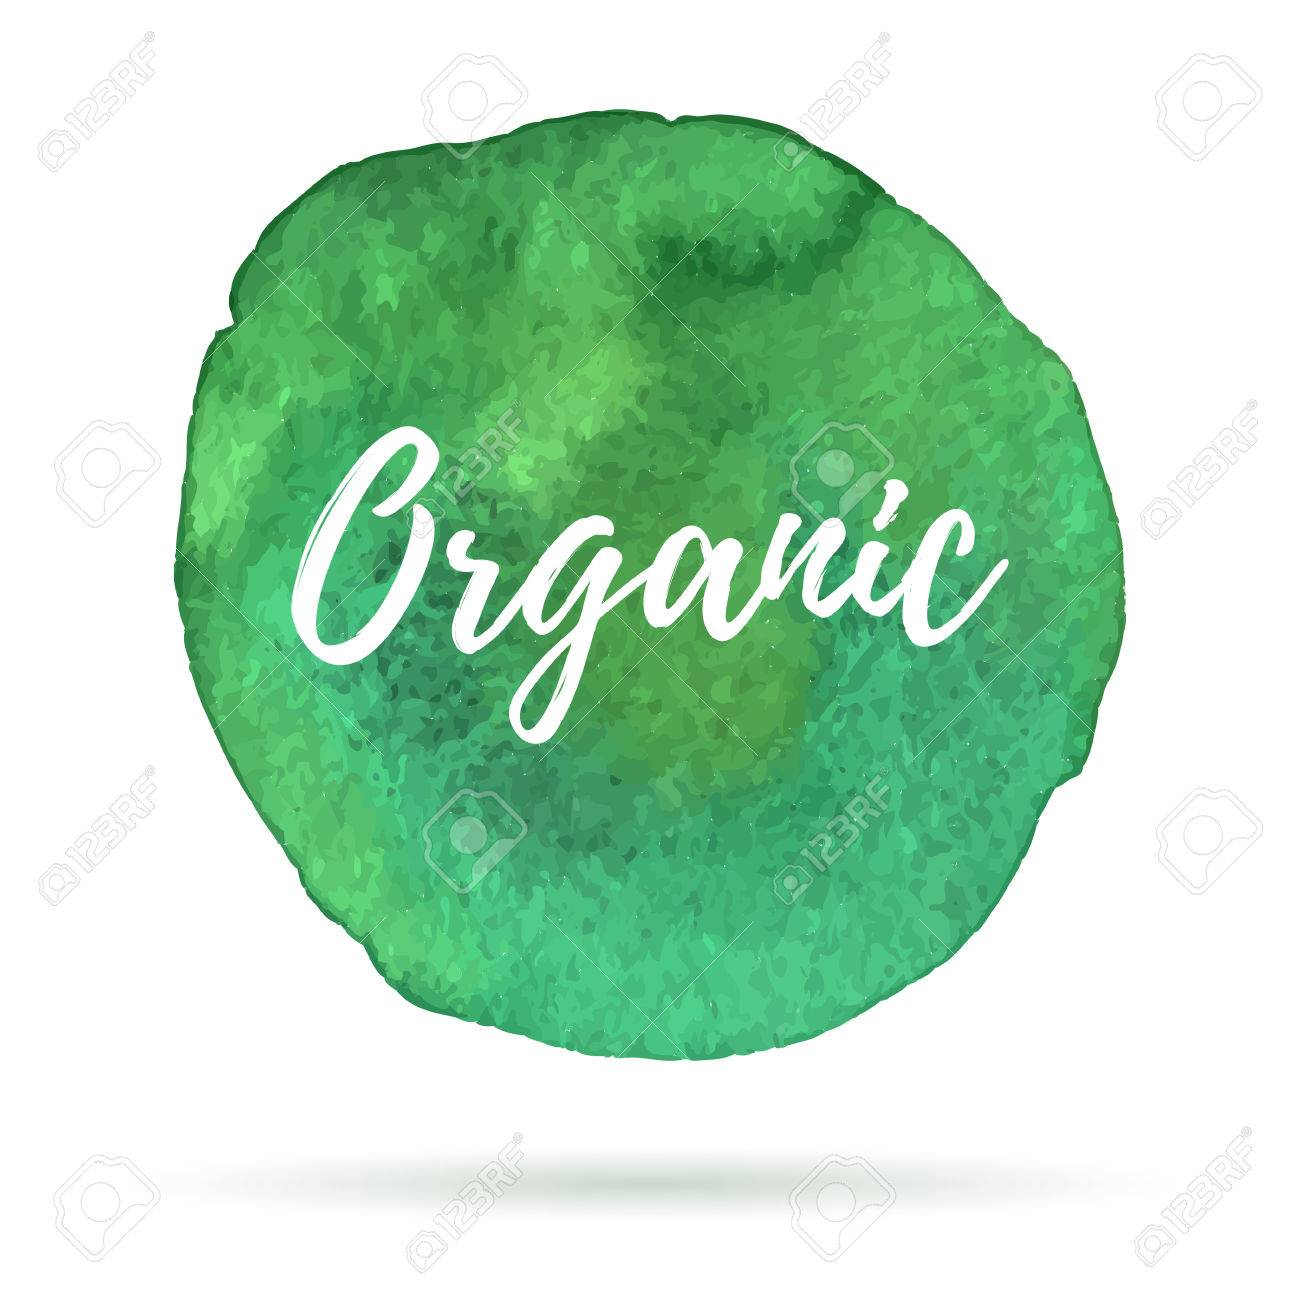 Ecology icon on abstract watercolor paint blot on a white background. Eco, organic icons with shadow. Healthy food concept. - 61427580